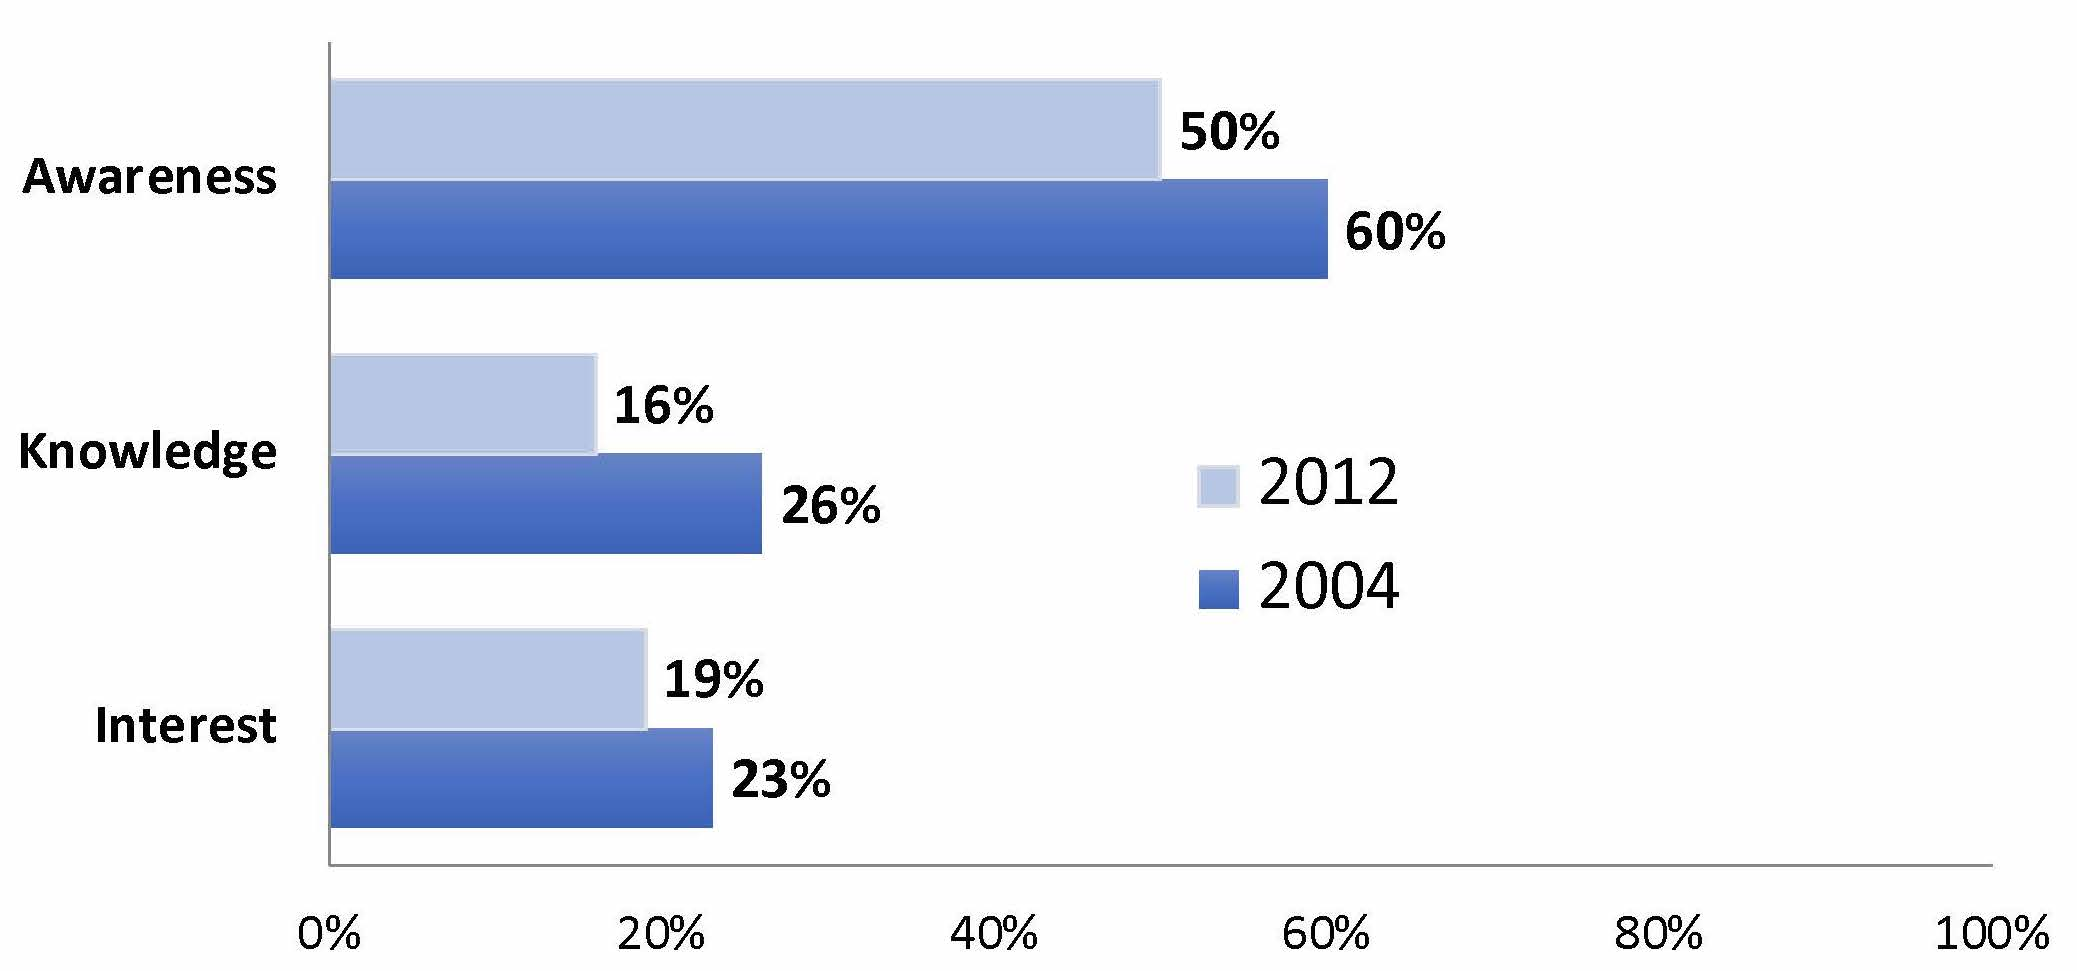 Kaiser Permanente Advertising Results 2004 to 2012